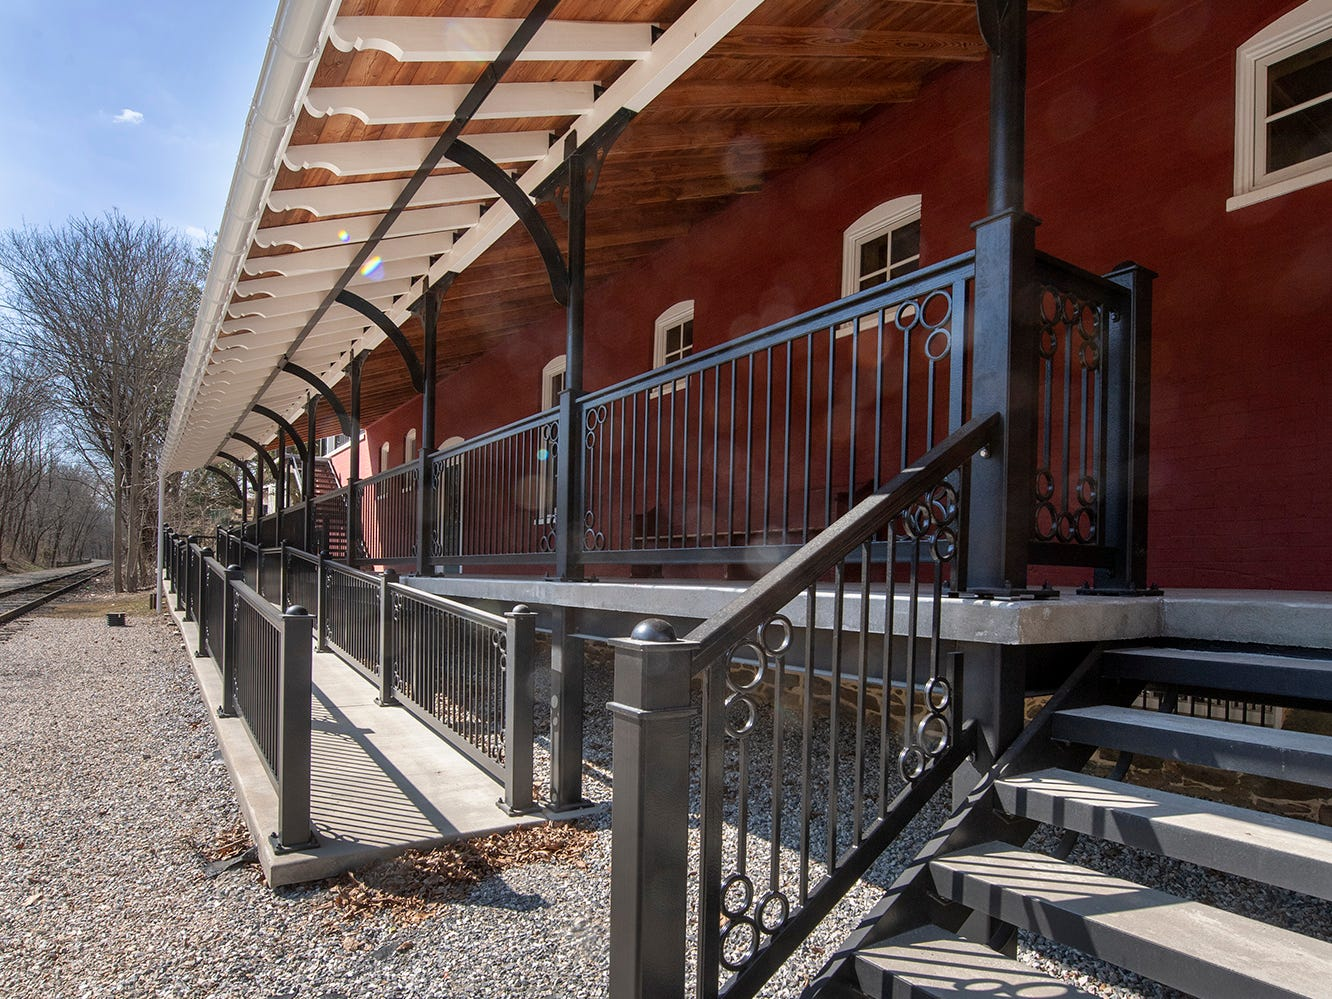 David Keller and Ellen Darby leased an area in the 30-foot right-of-way of the York County Heritage Rail Trail from the county to build the porches and stairs along in Seitzland Village outside of Glen Rock.